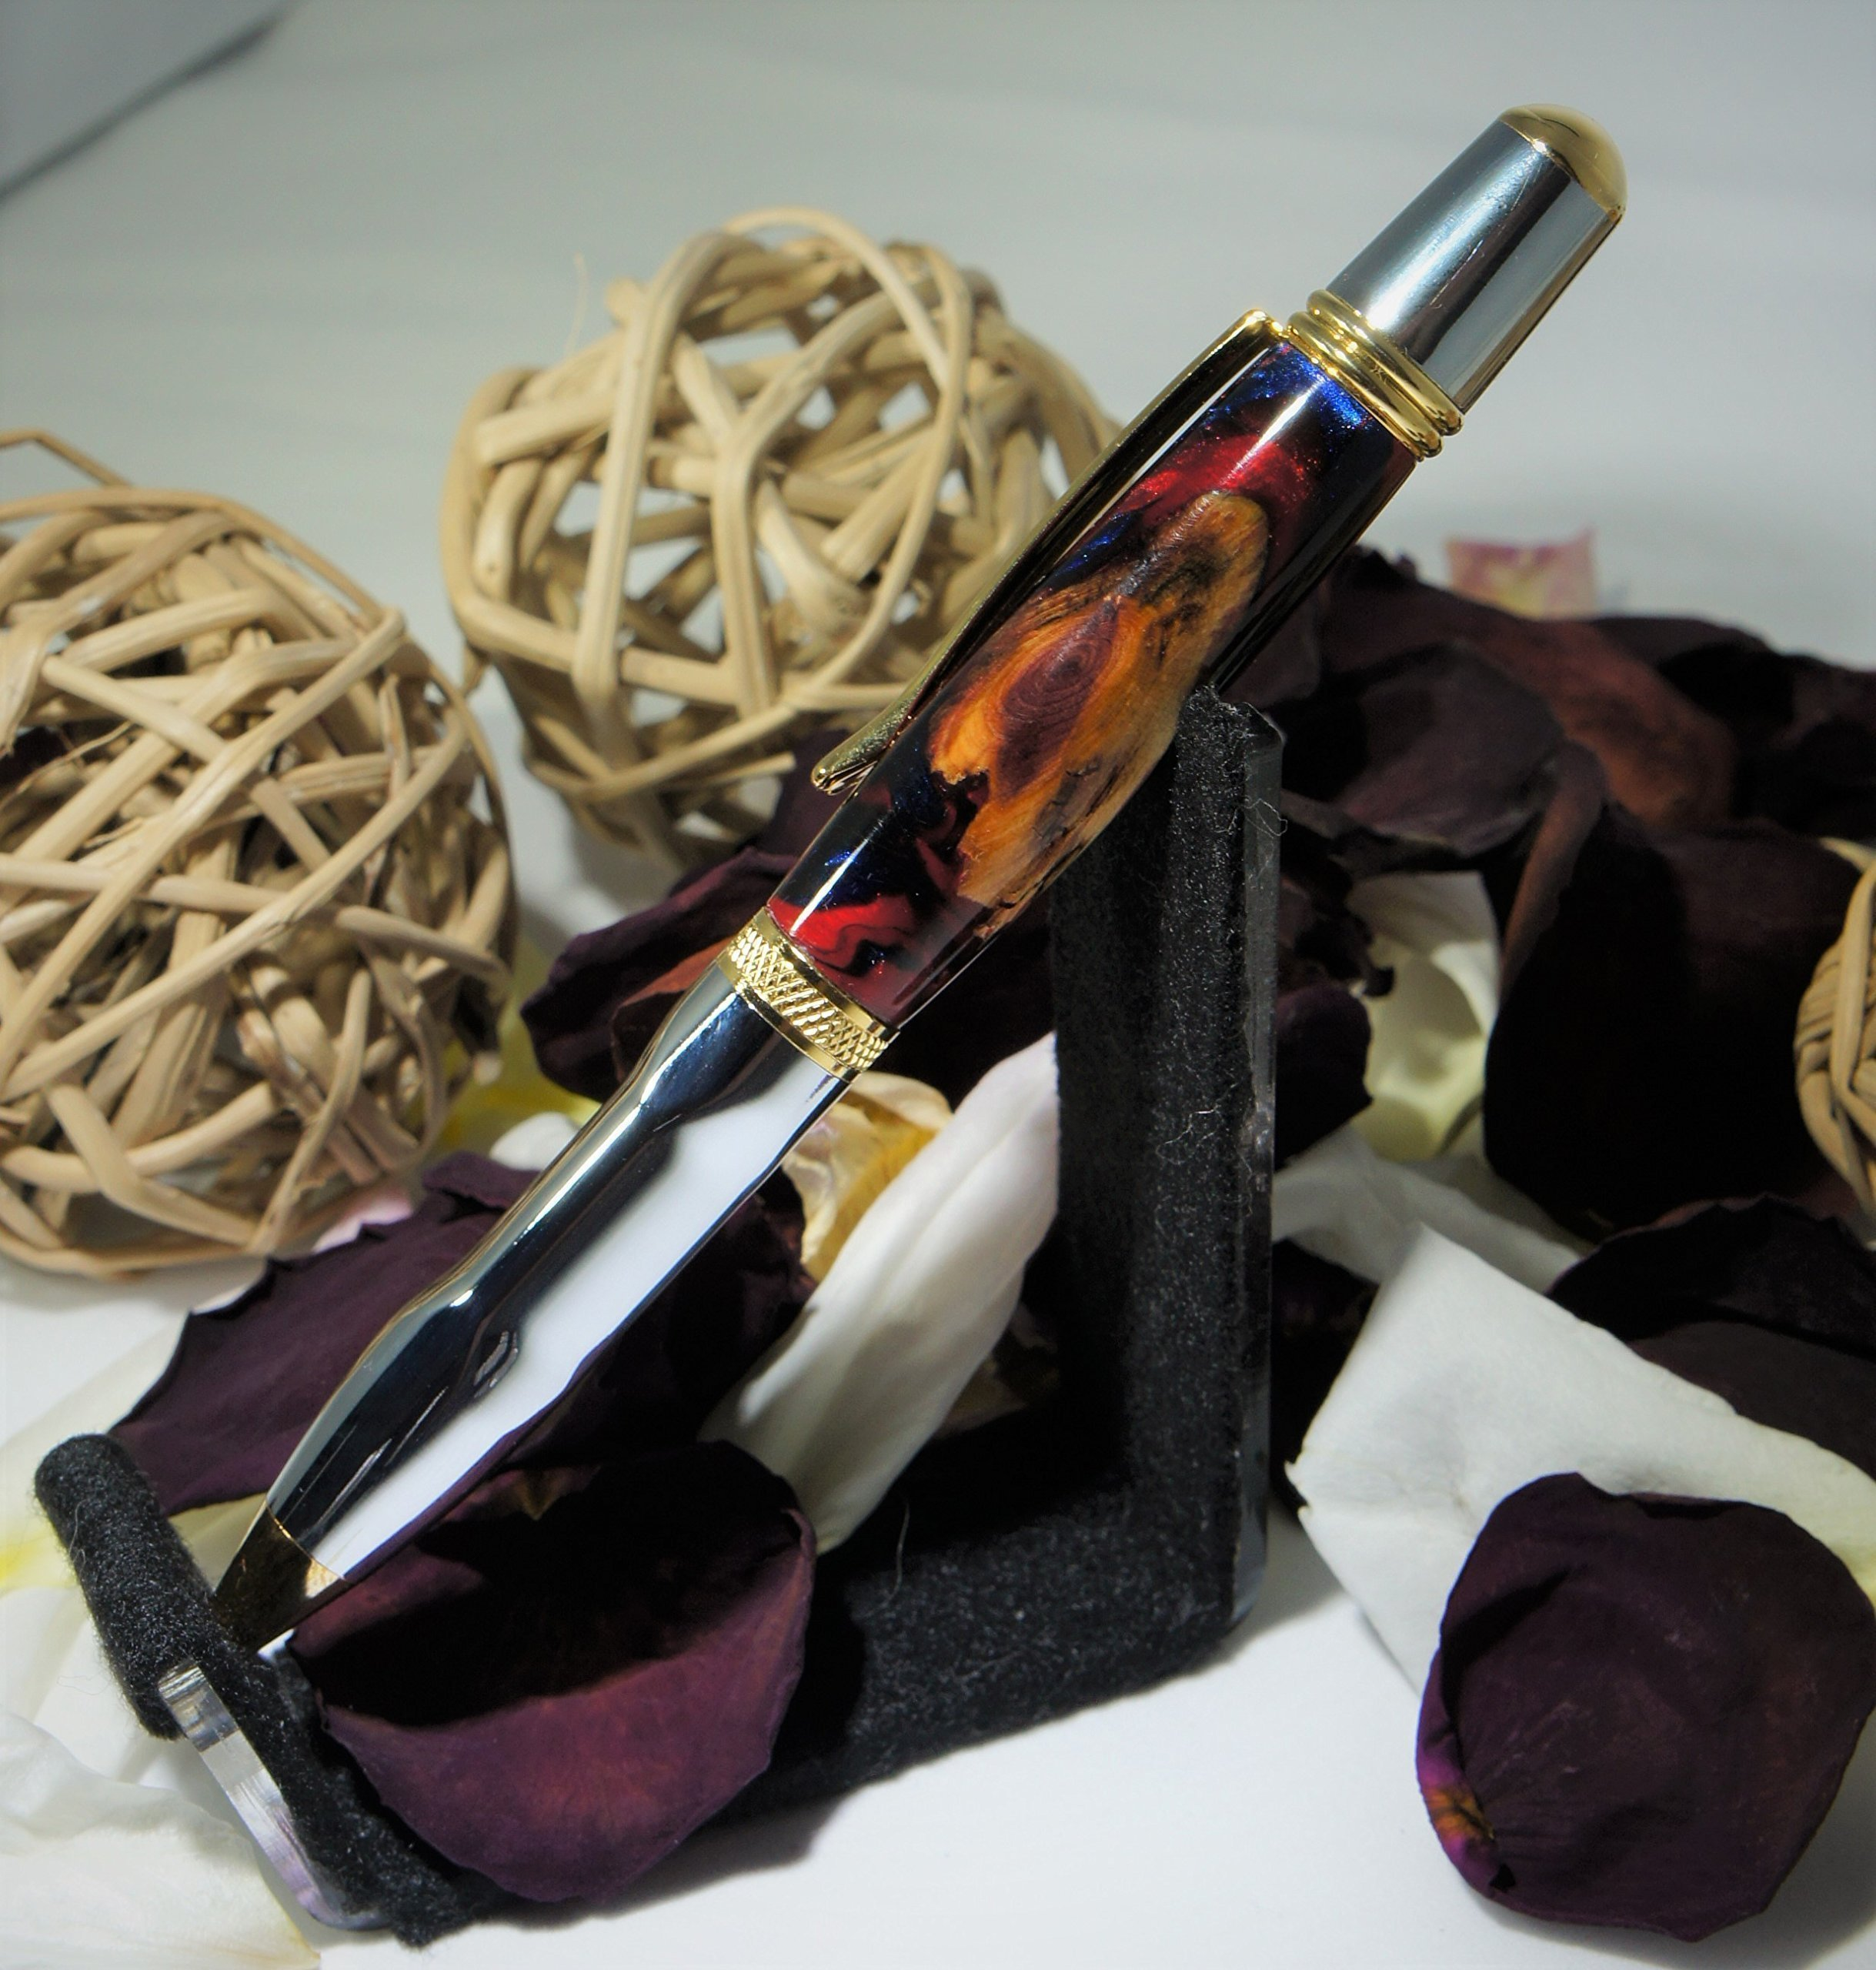 Earth Series - Luxury Wood & Resin Hybrid Pen with Grip Countour